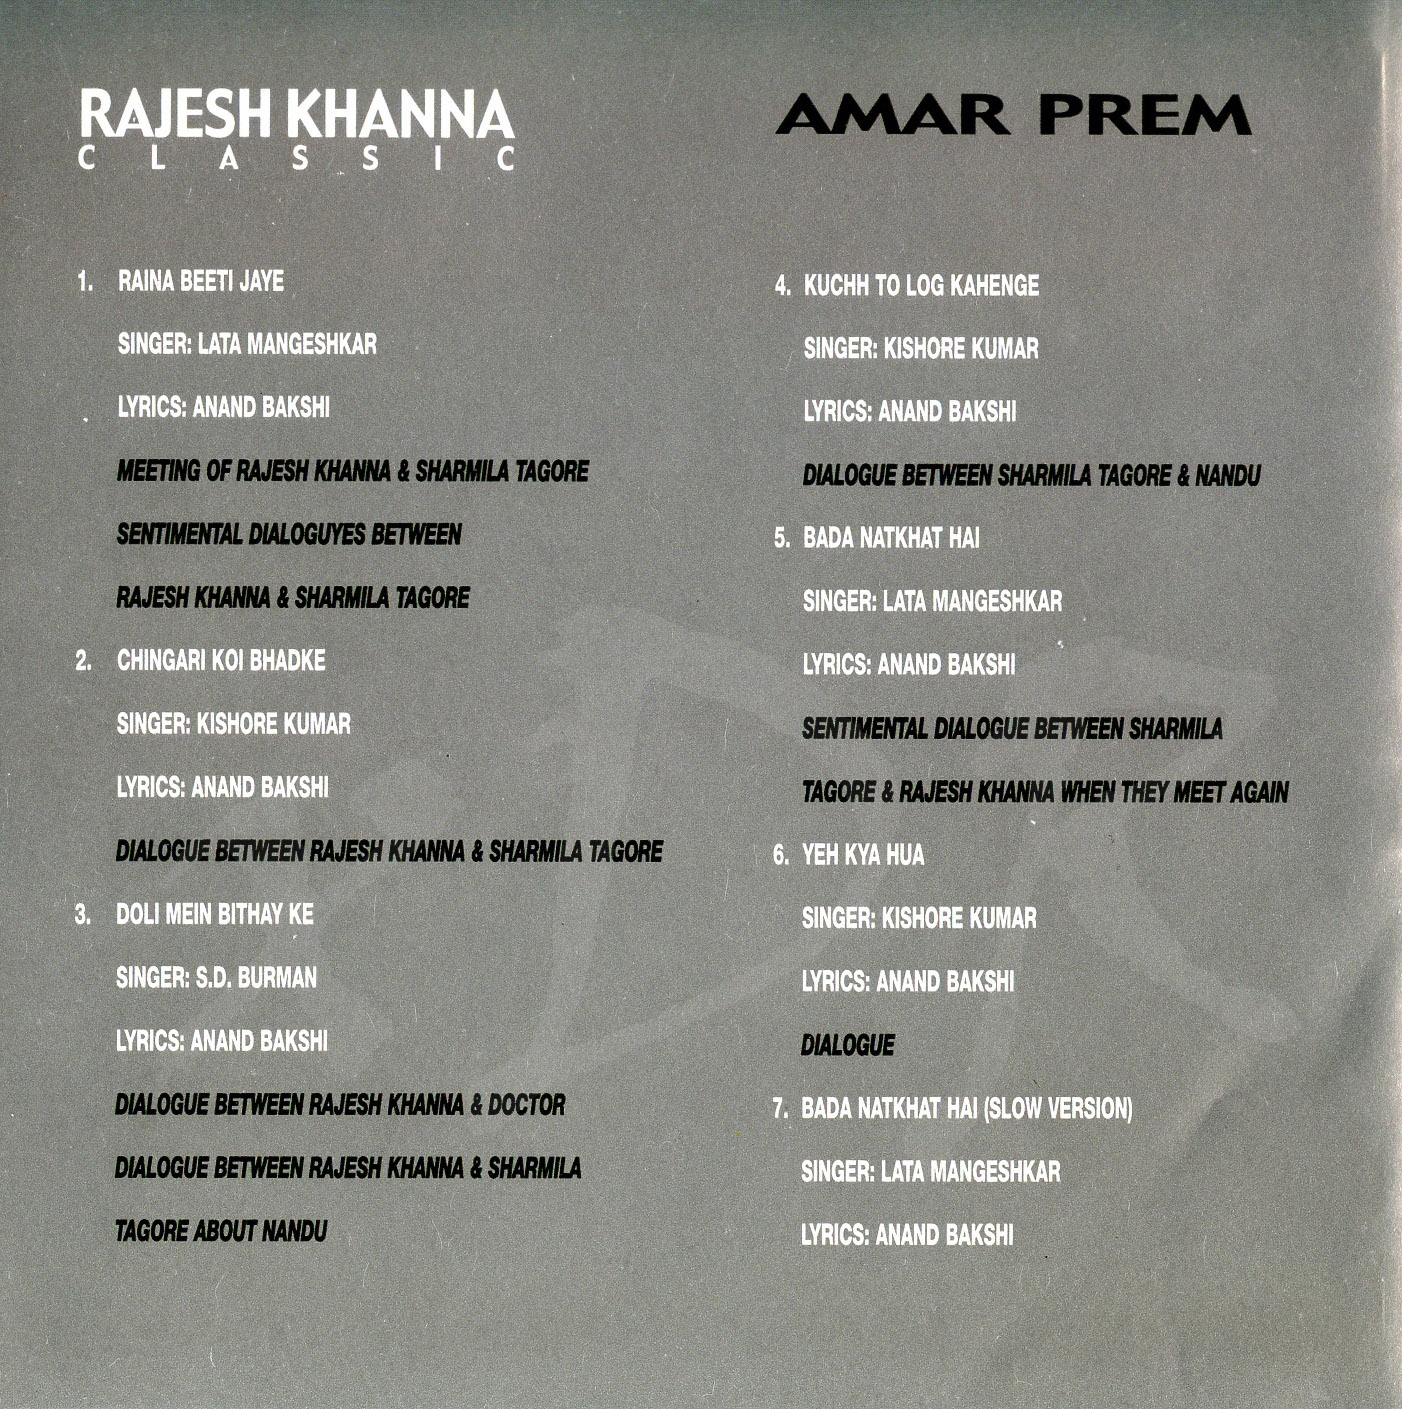 Amar Prem Lyrics and video of Songs from the Movie Amar Prem